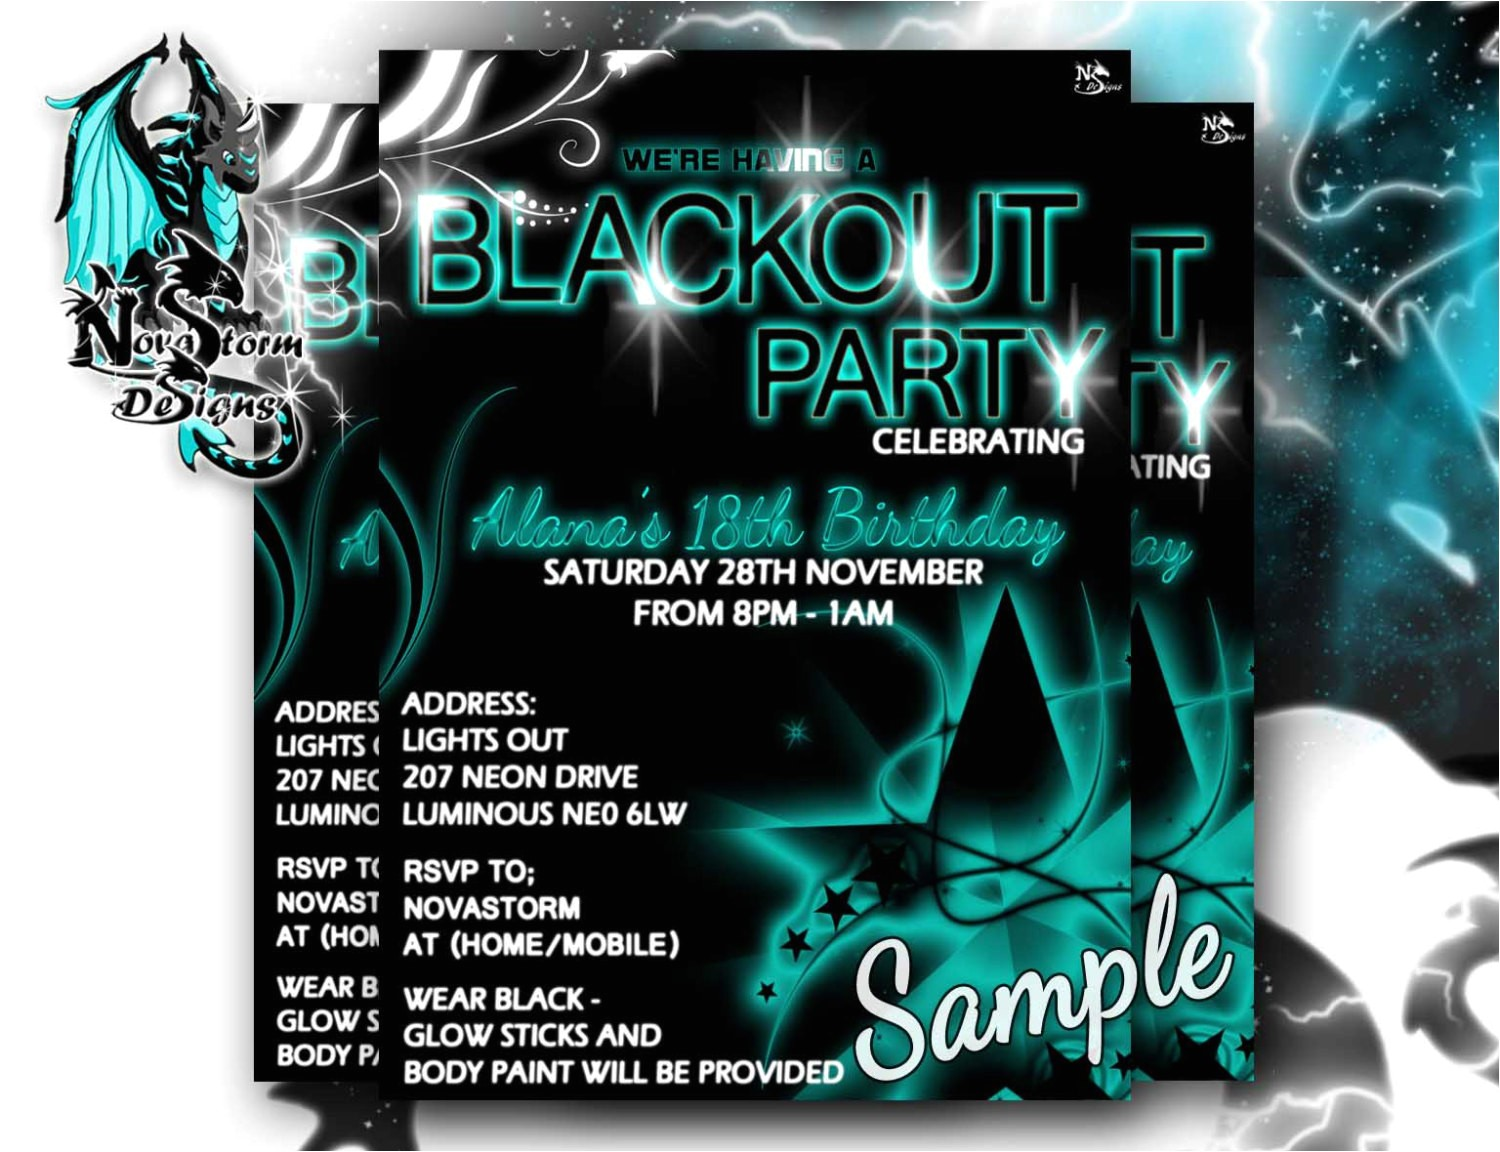 Blackout Party Invitations Templates Blackout Party Invitations Uv Glow Dance Party Blacklight